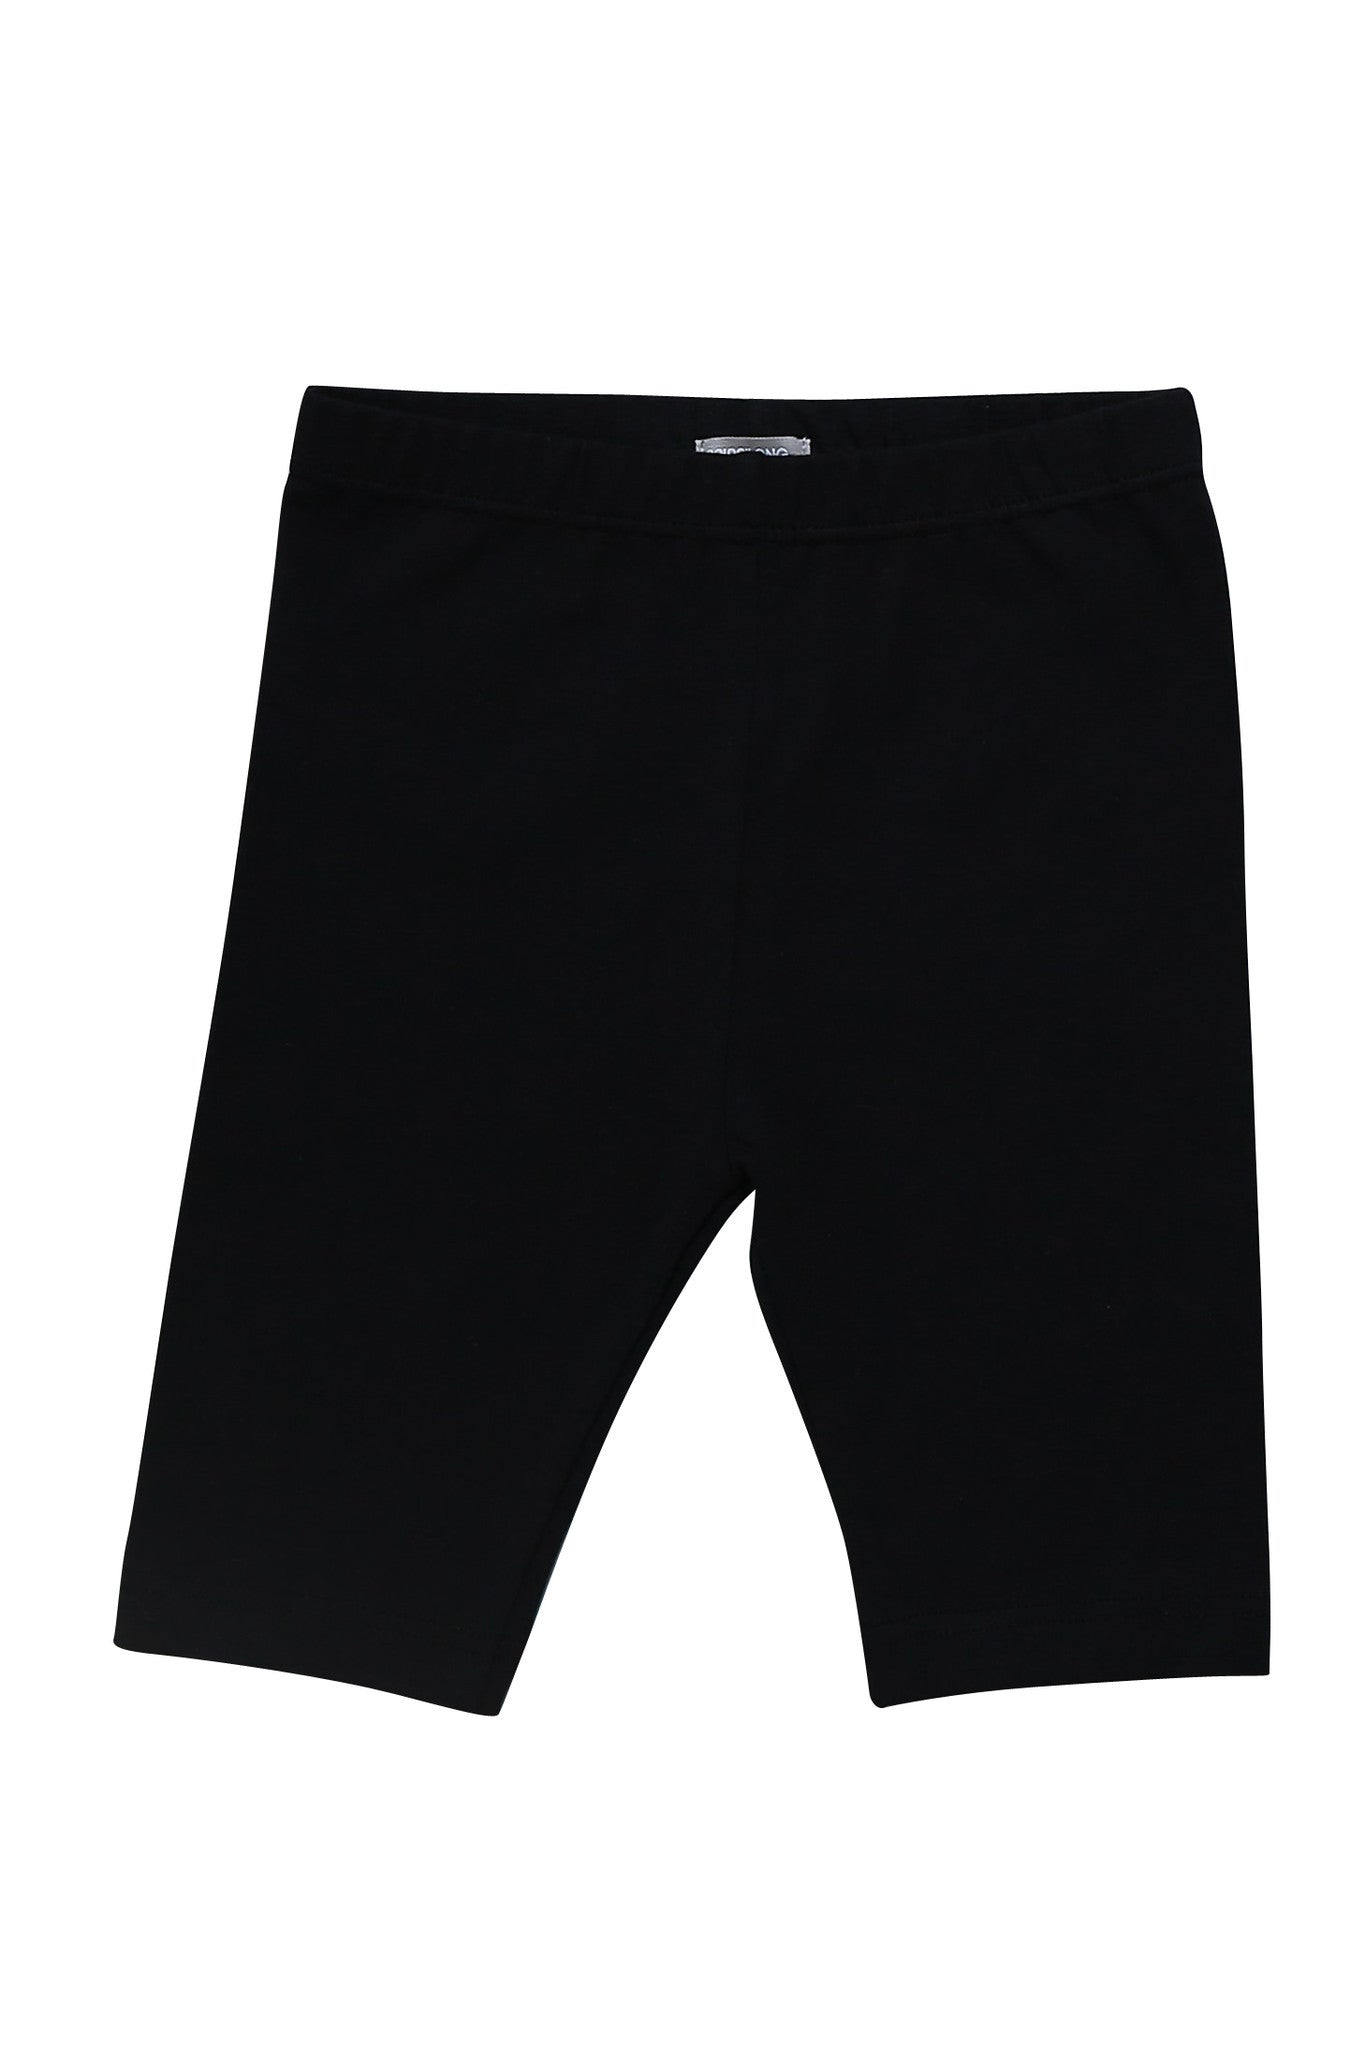 Half Leggings - Girls Essentials Black Half Leggings